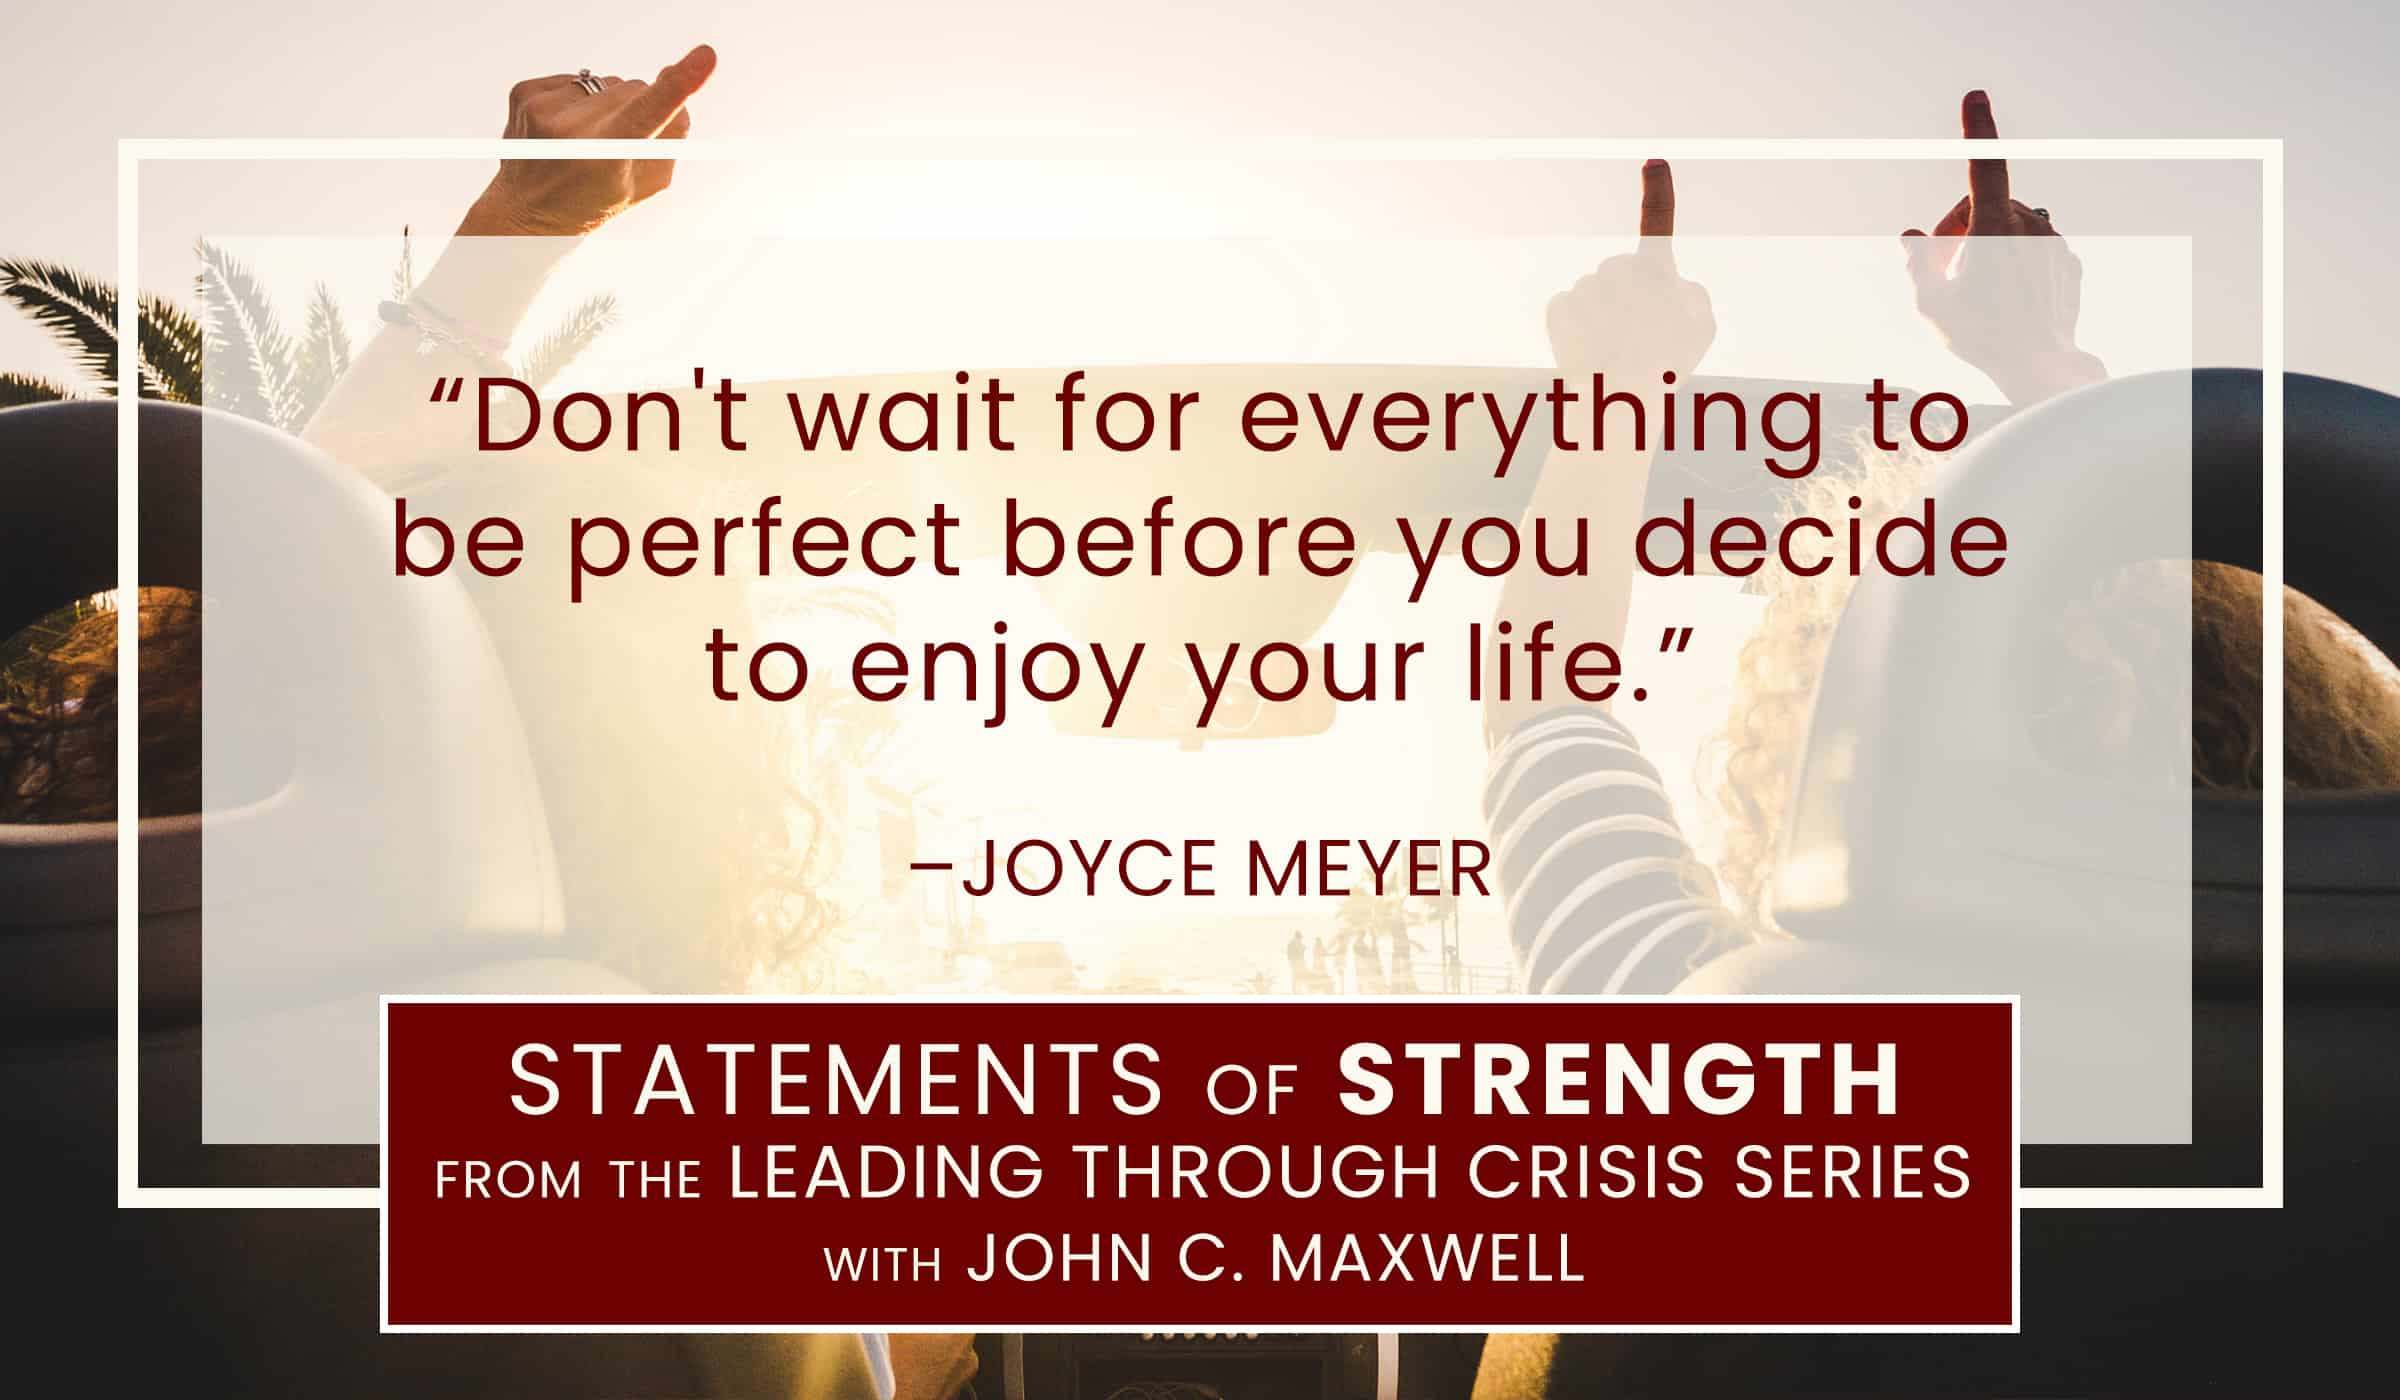 image of quotation picture with text quote from joyce meyer